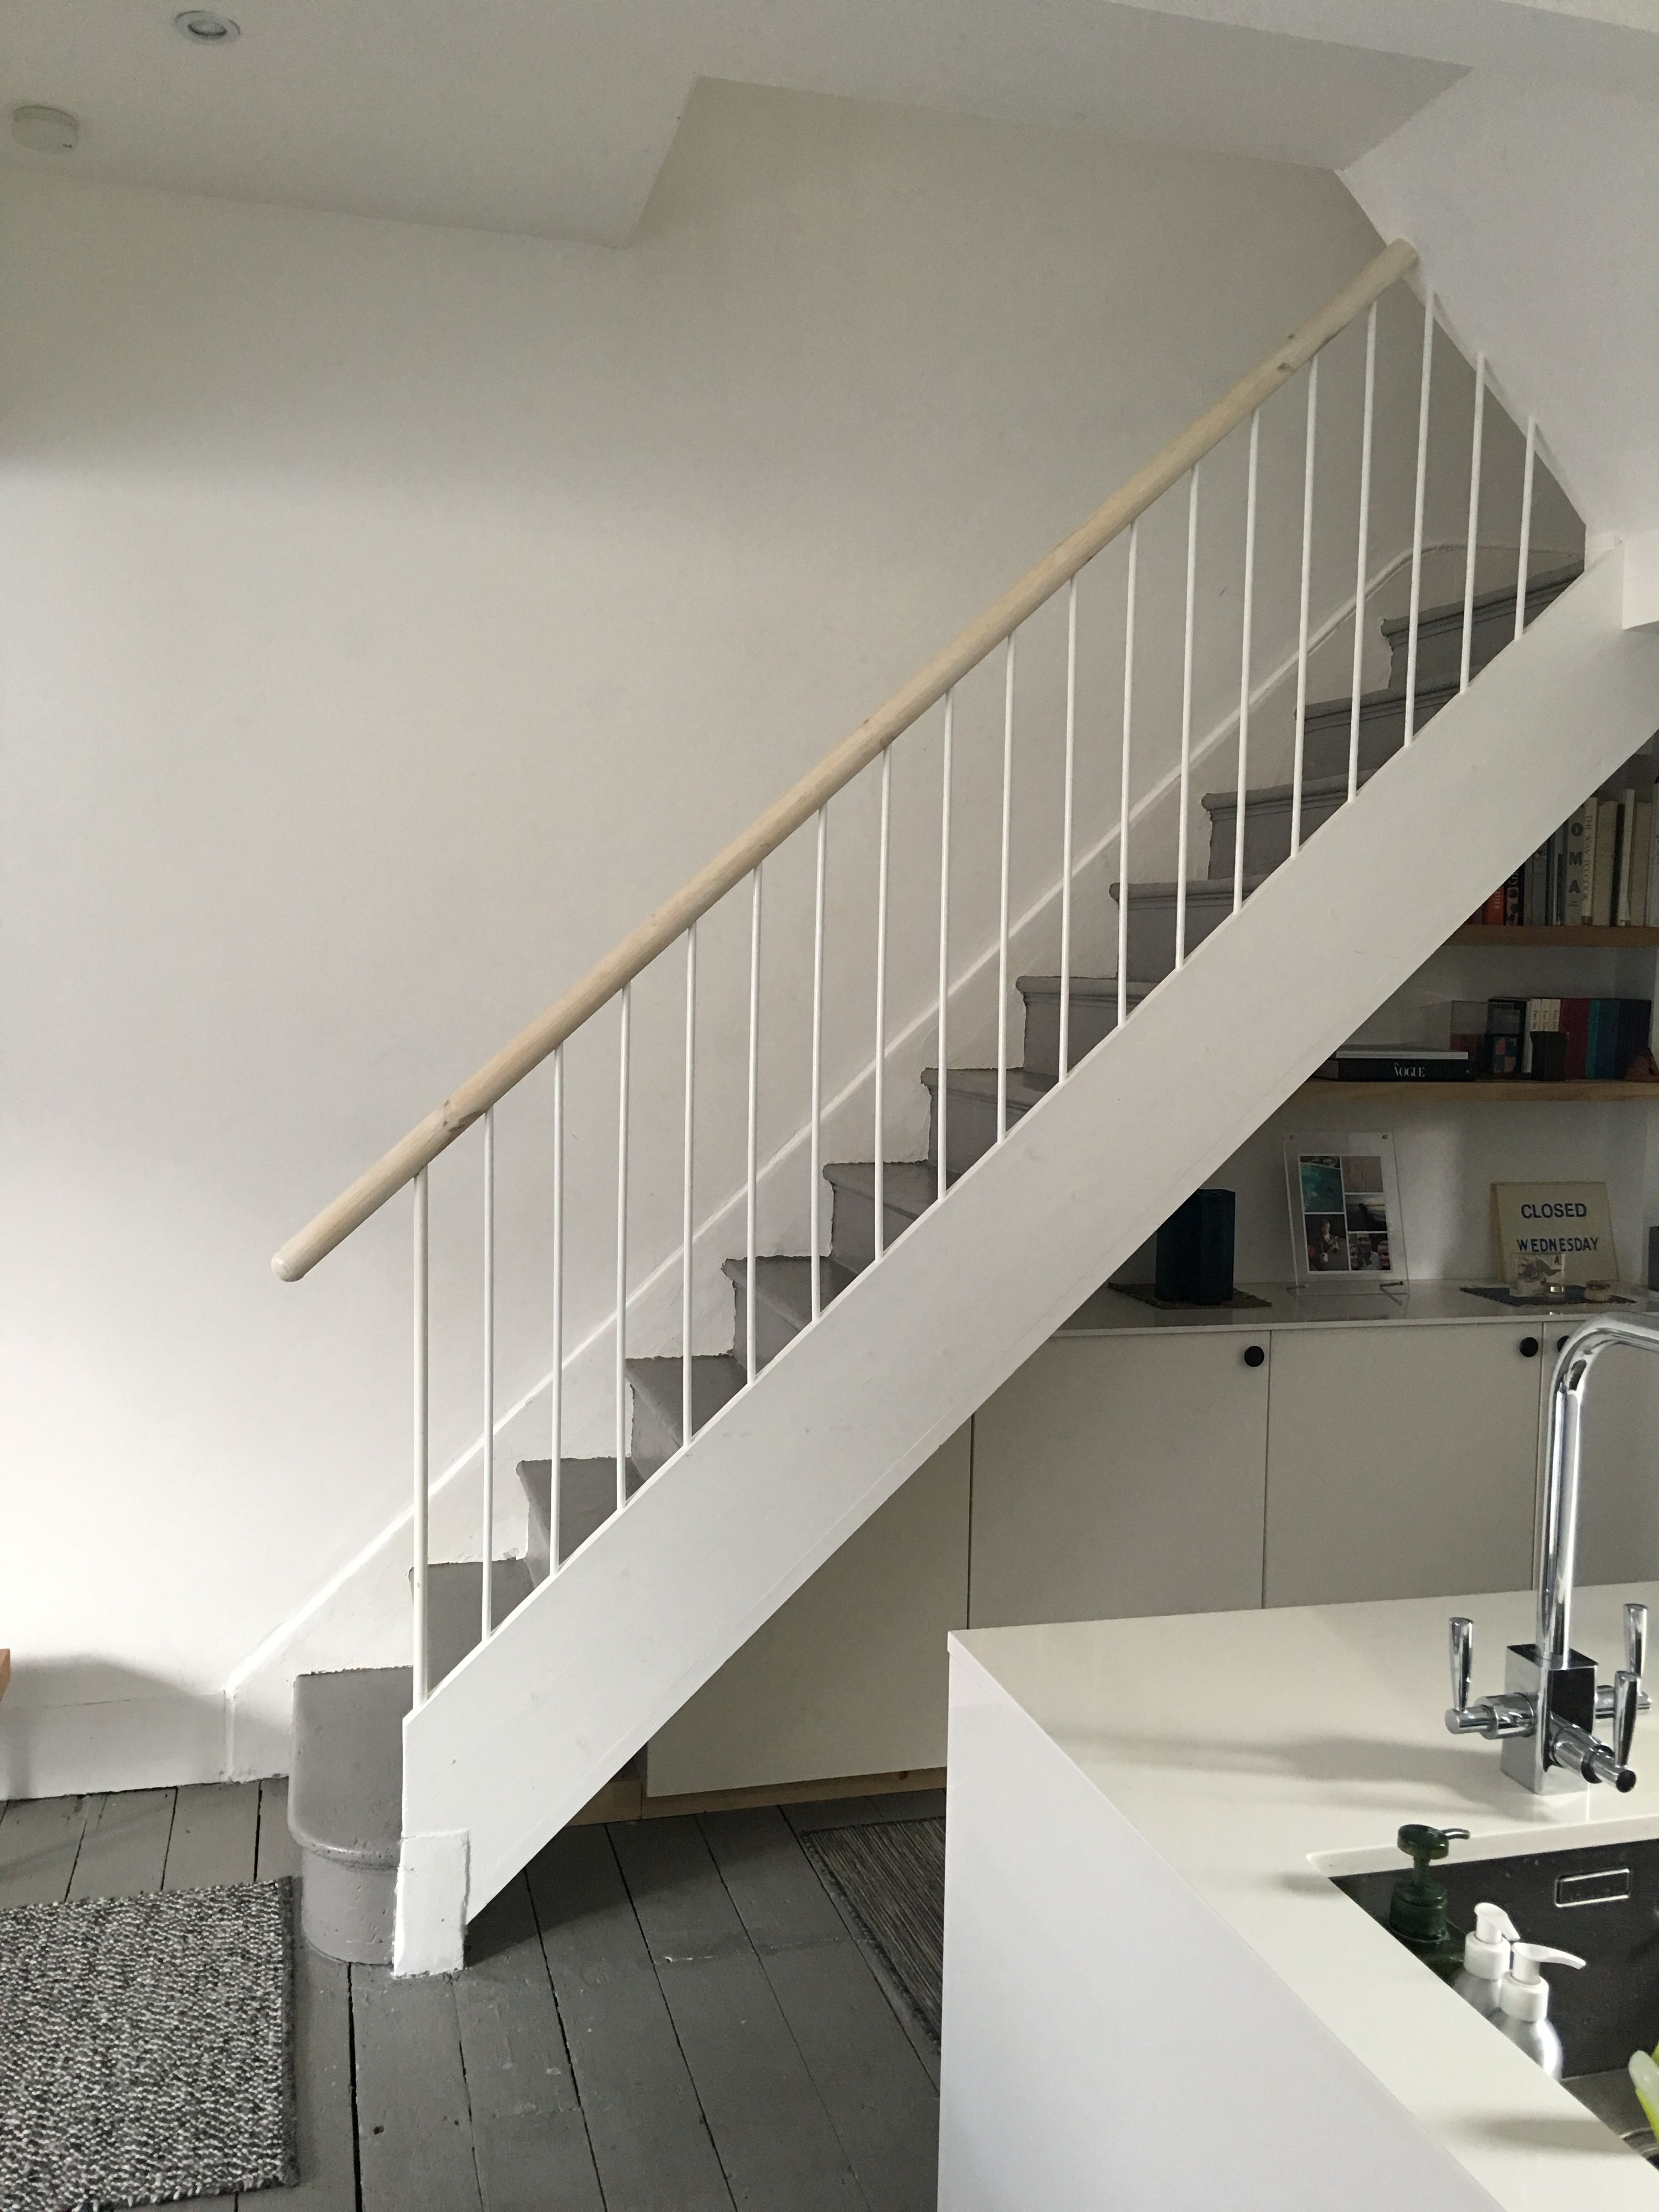 Diy Modern Stair Railing We Made In Our Old East London House Fits With Our Scandinavian Modern Style Modern Stair Railing Modern Stairs New Homes